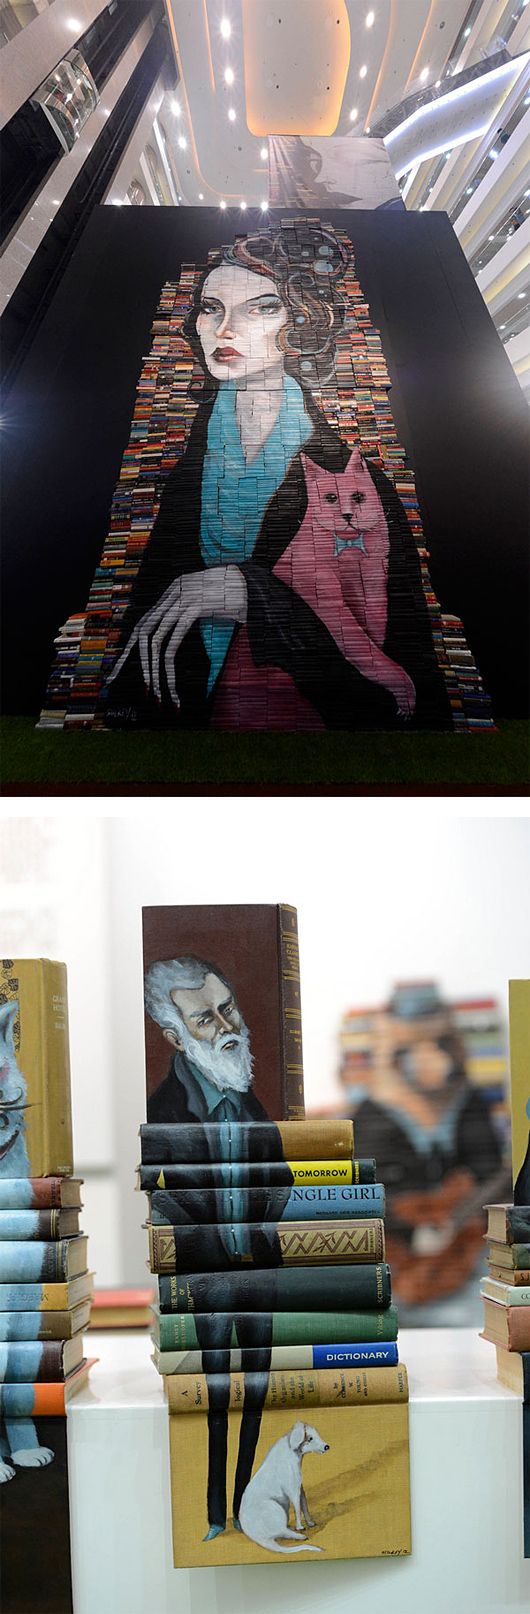 872d art Painted Book Sculptures by Mike Stilkey